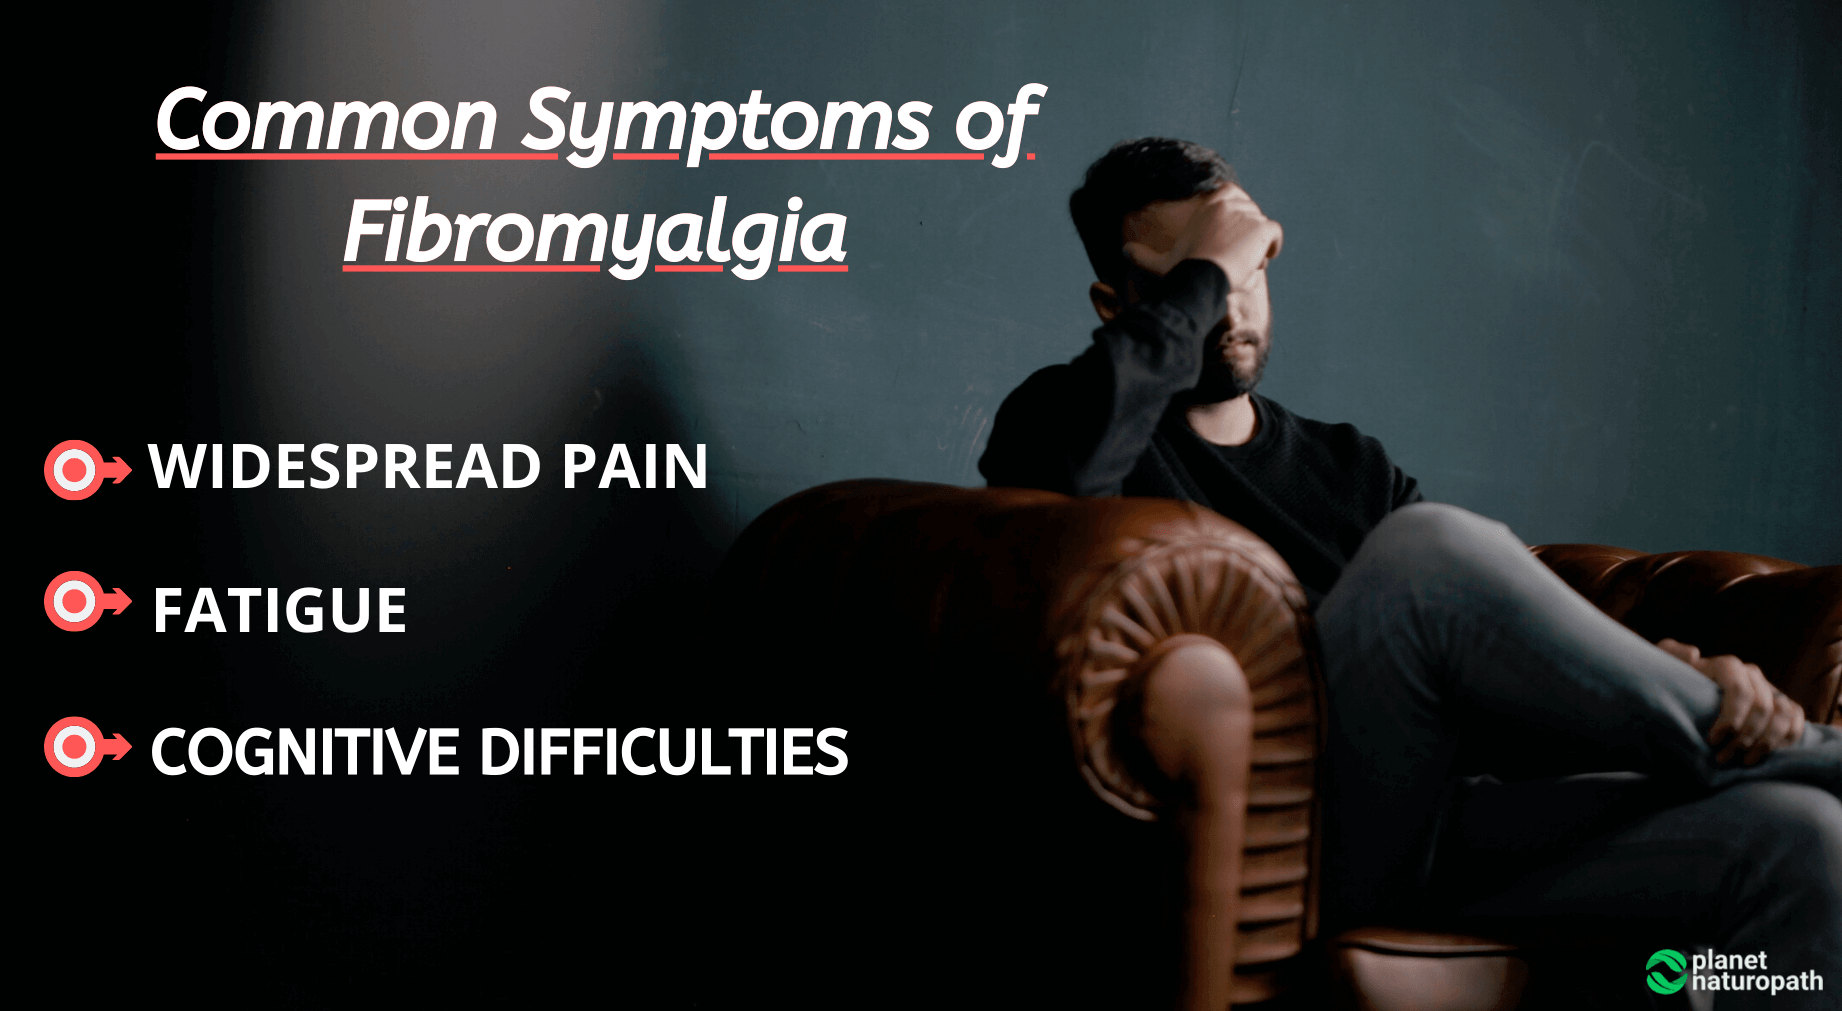 Common Symptoms of Fibromyalgia